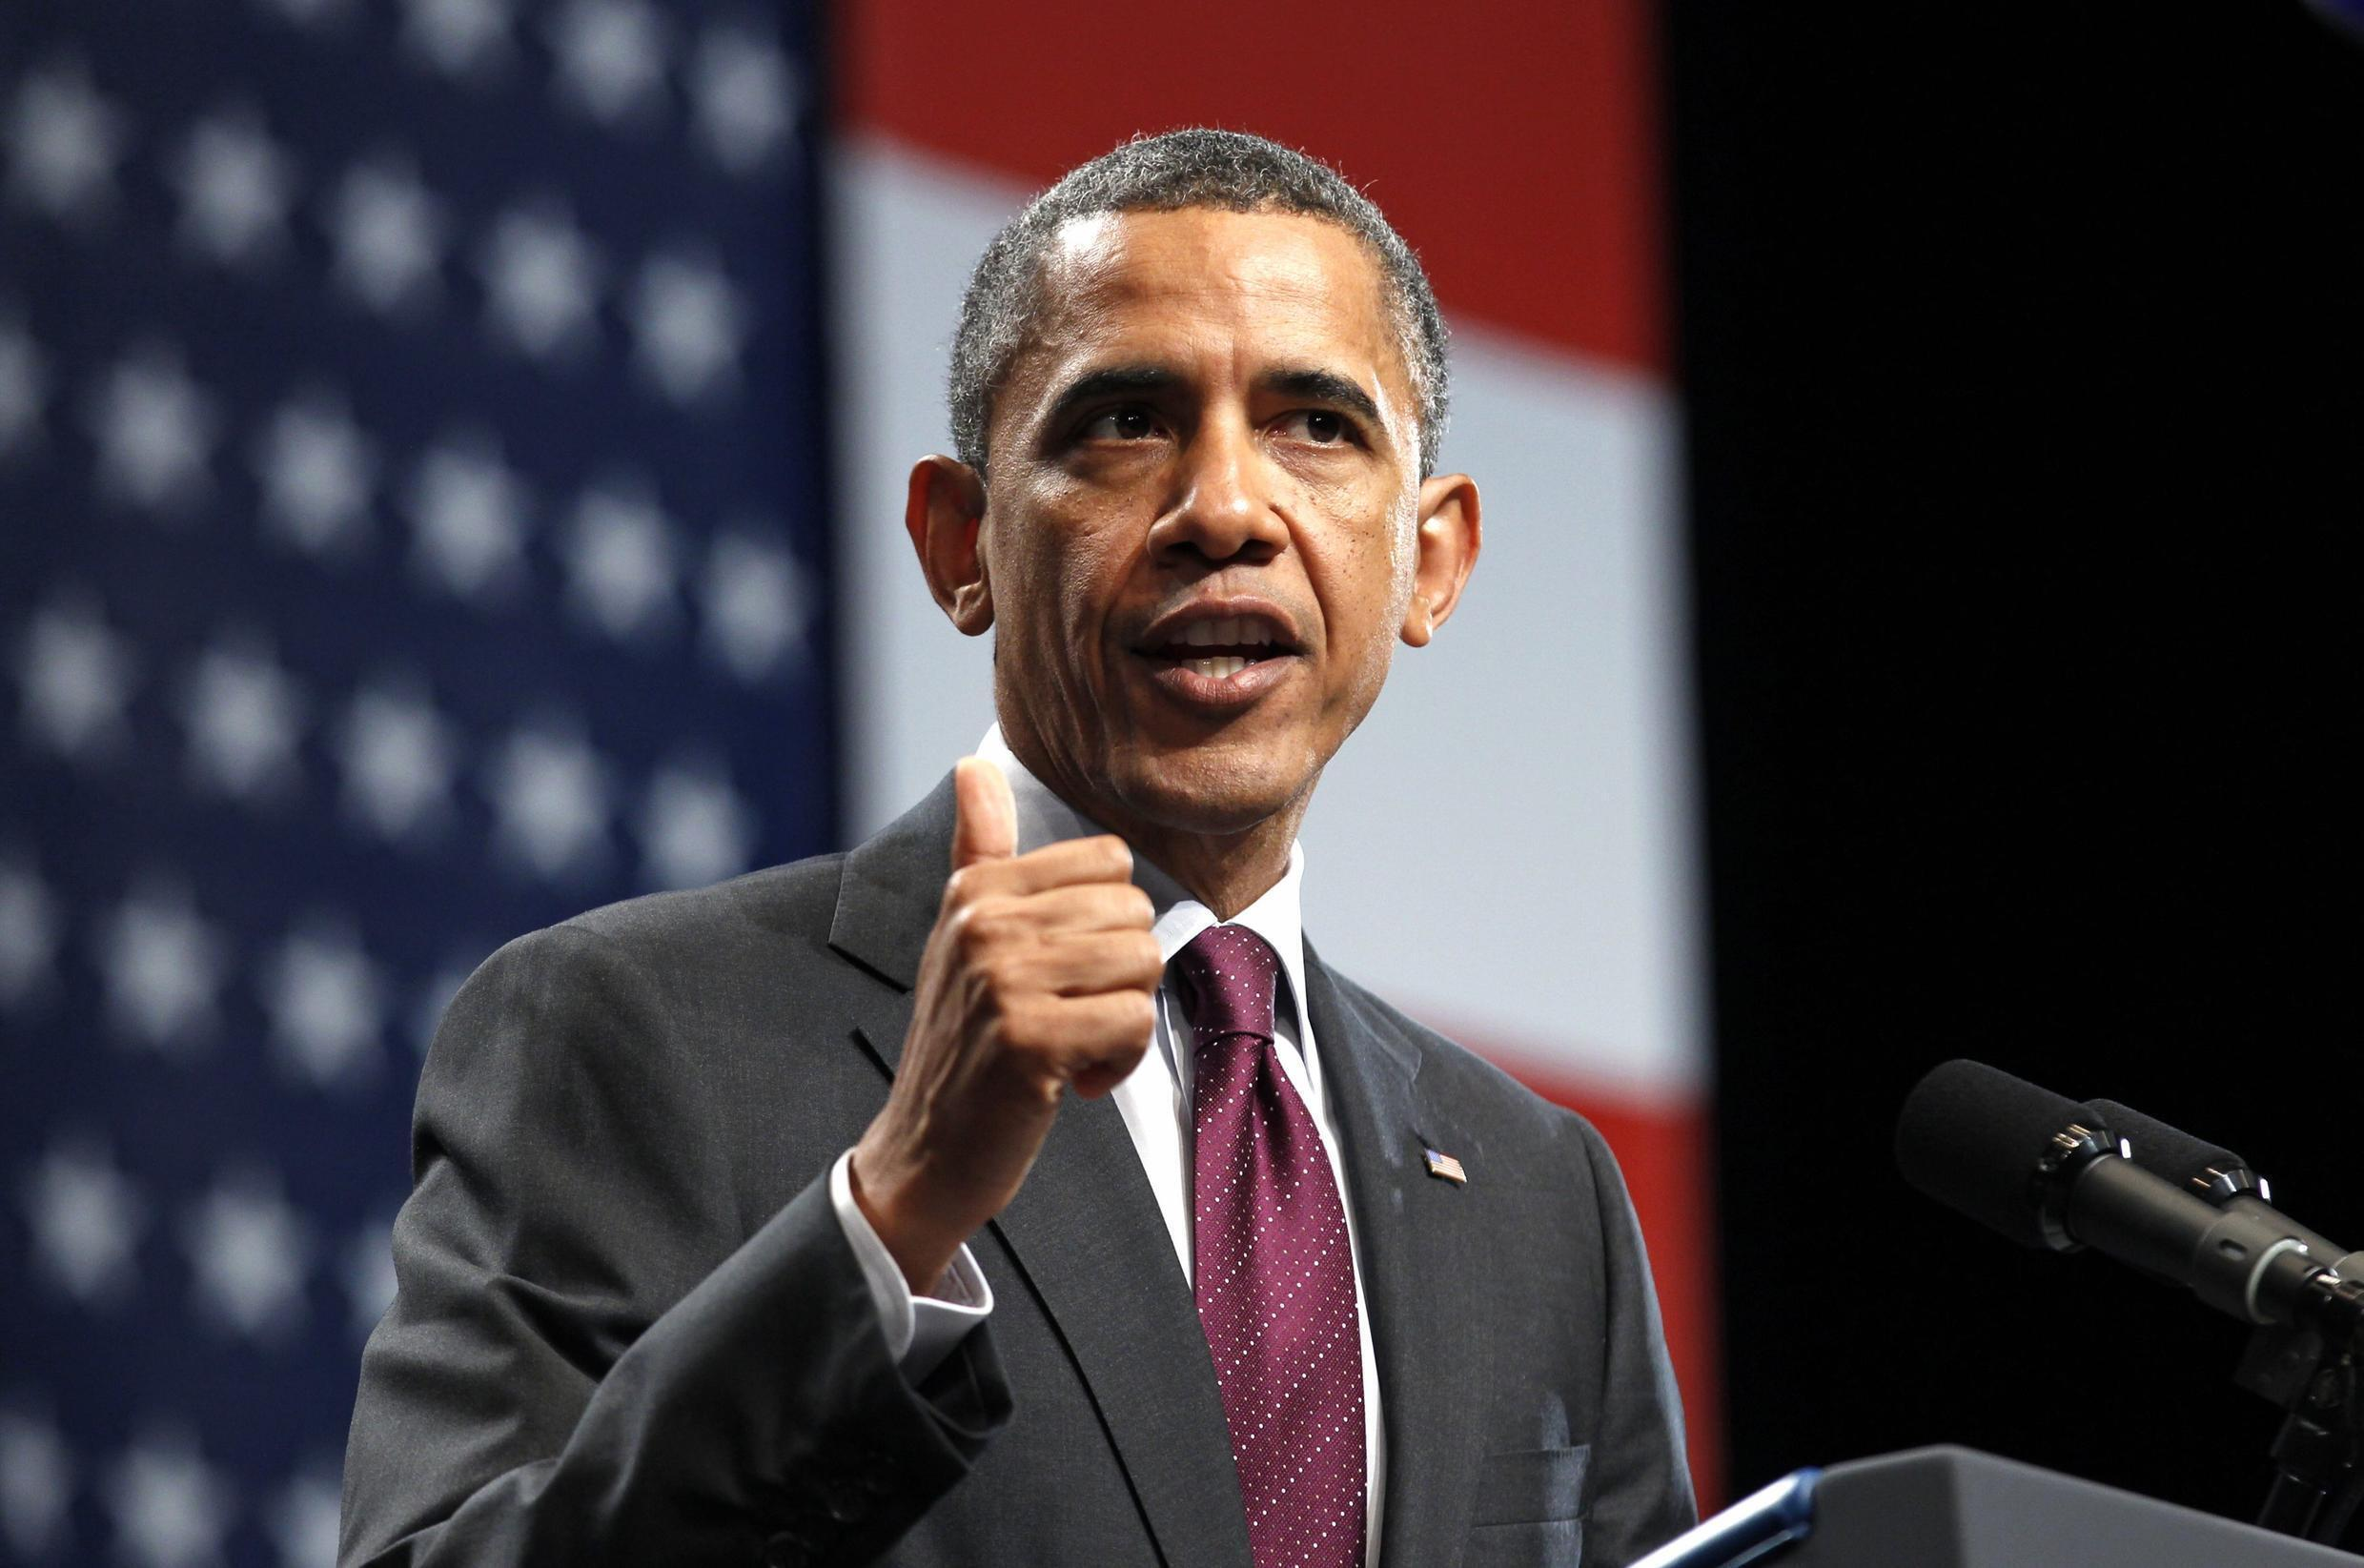 President Barack Obama at the National Association of Latino Elected and Appointed Officials, Florida, 22 June, 2012